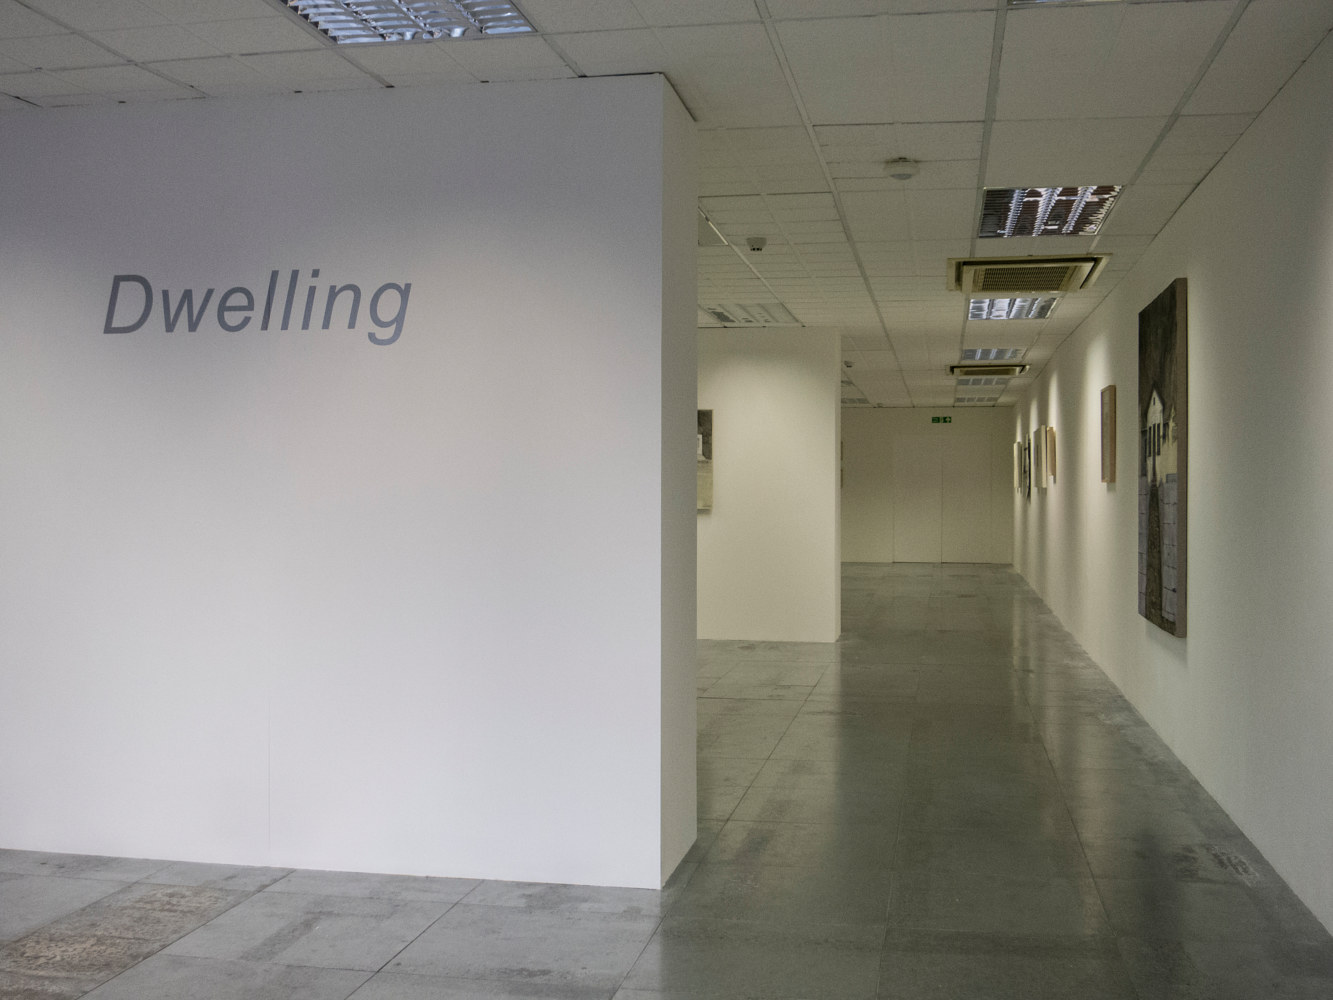 Dwelling - Solo Exhibition  by Amie t. Rangel